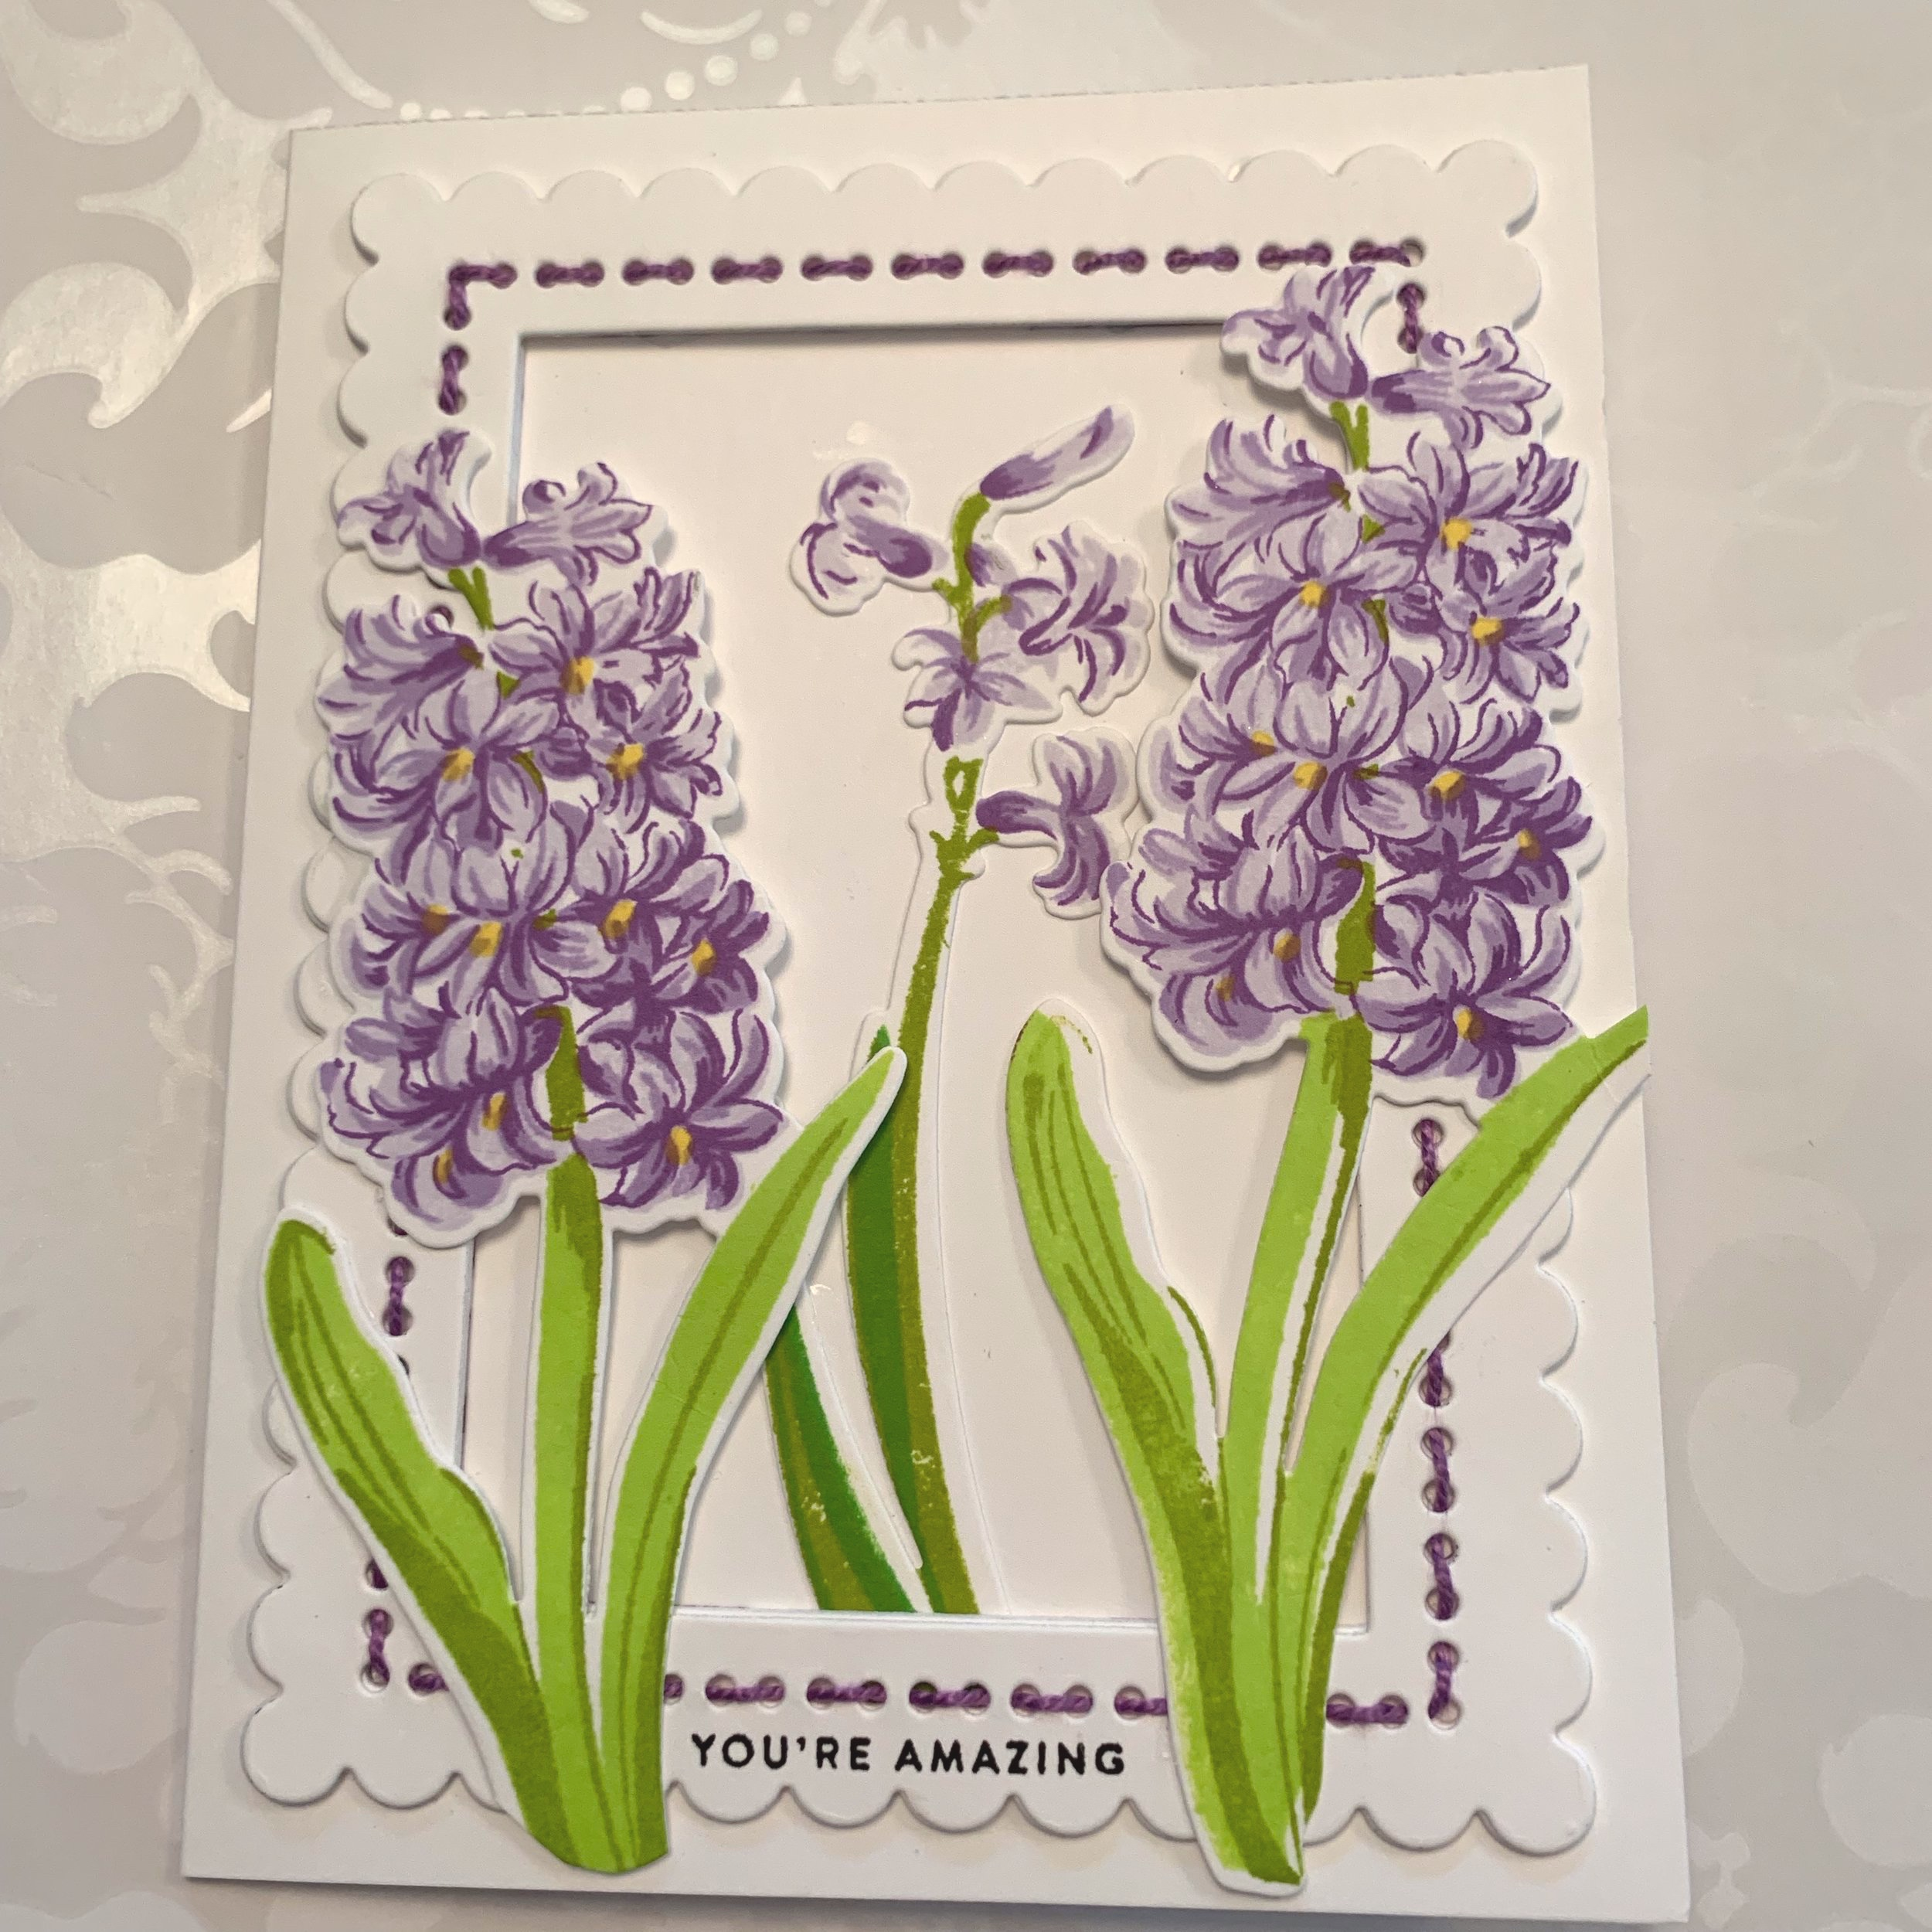 hyacinth+cards+%7C+positively+Jane